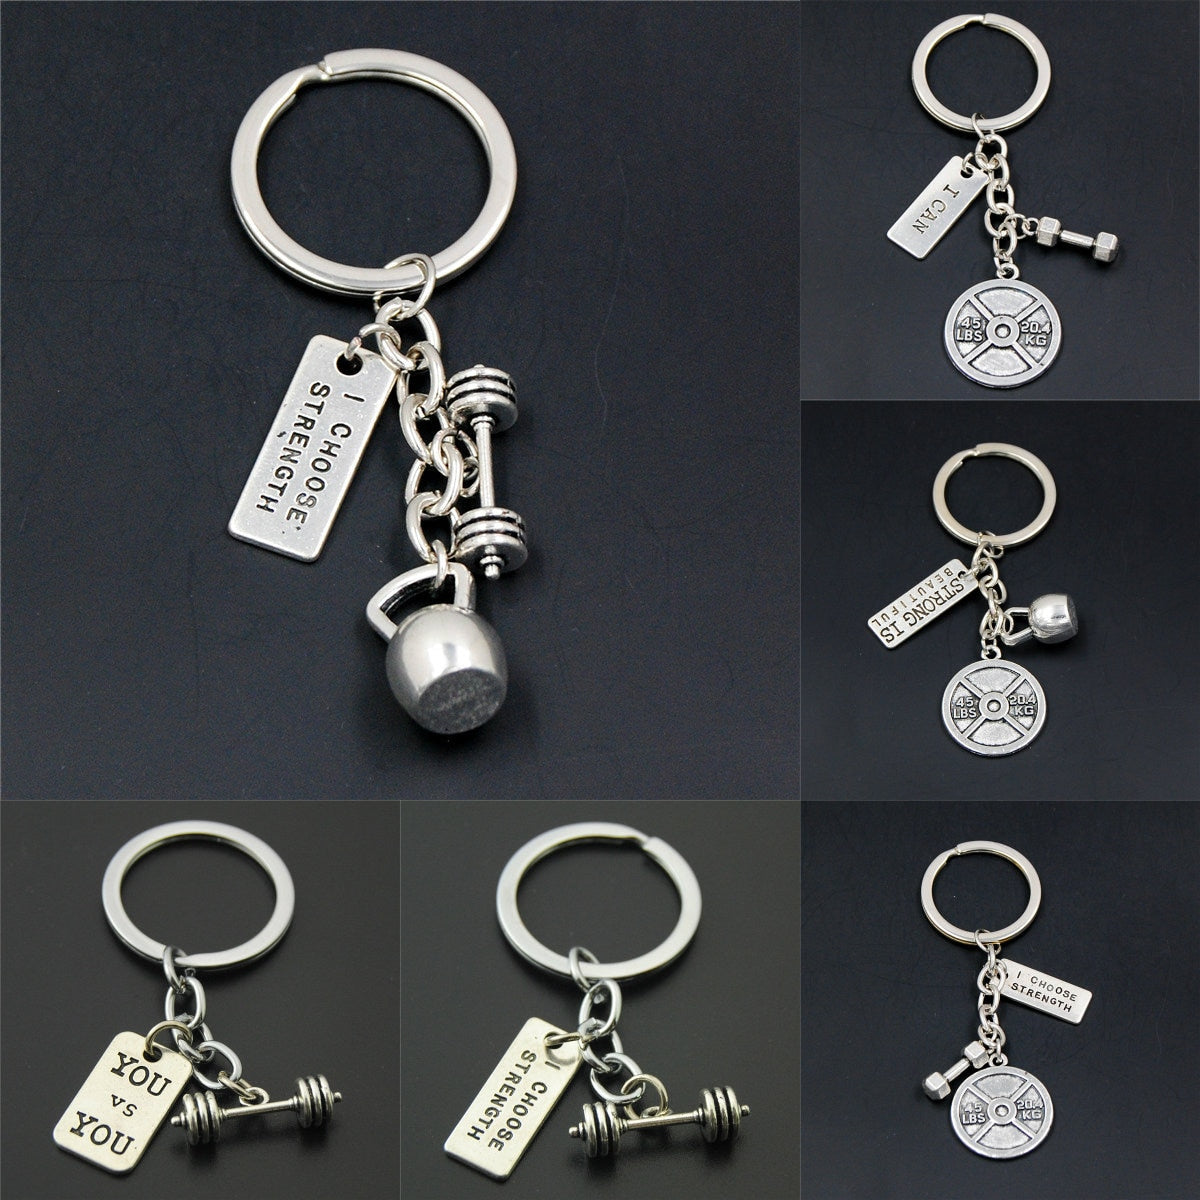 Fitness Motivation Keychains